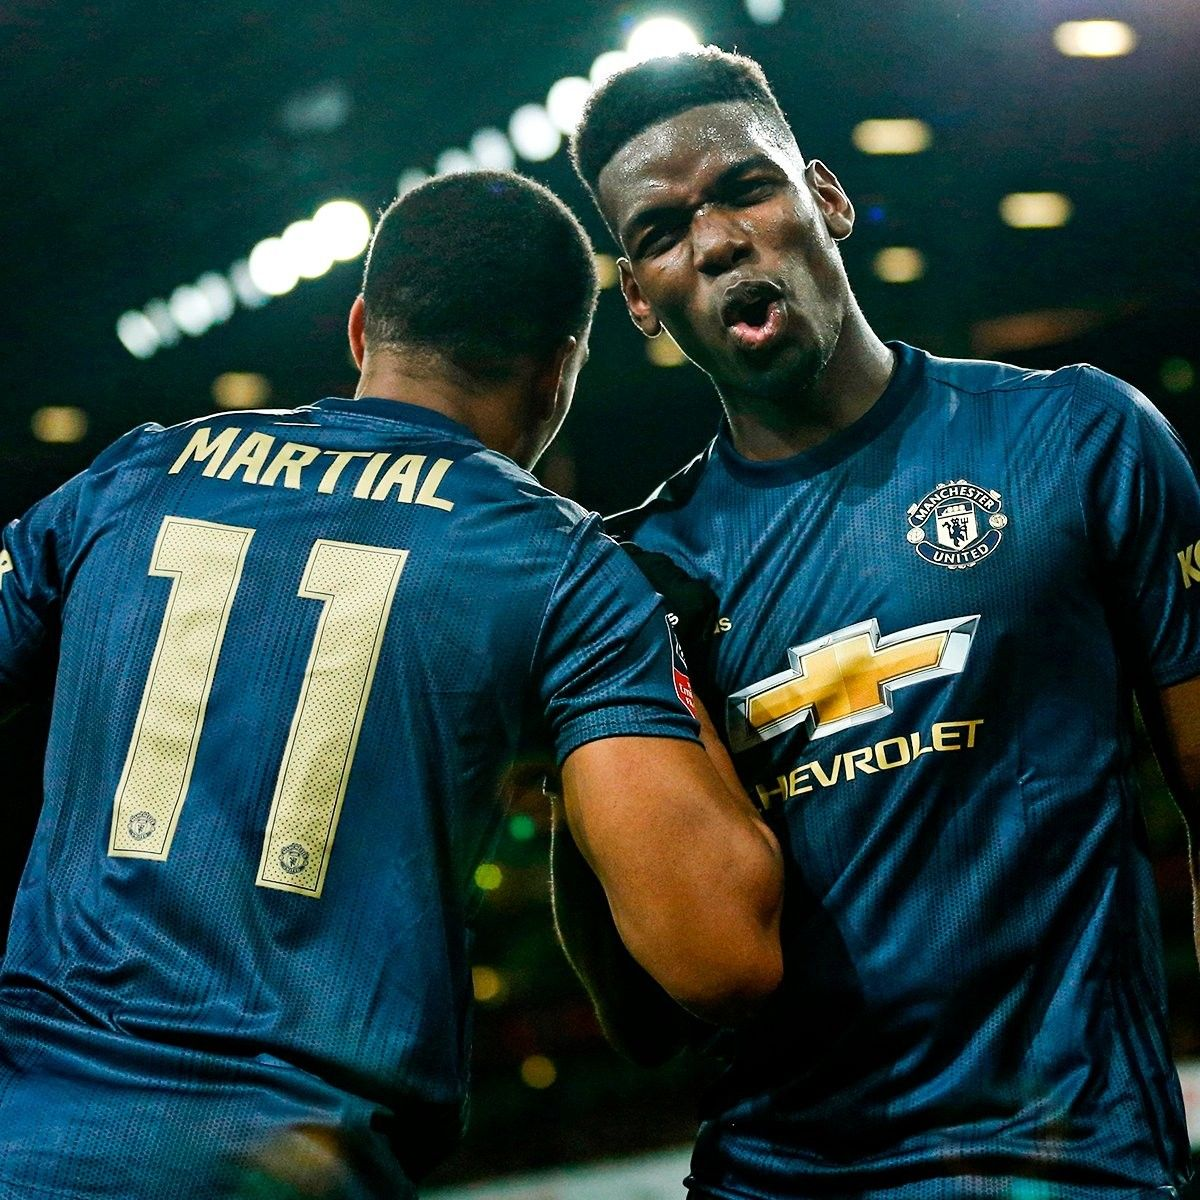 0d9fa1f8f89 ARSMUN  FACUP  MARTIAL  POGBA  FRENCHCONNECTION